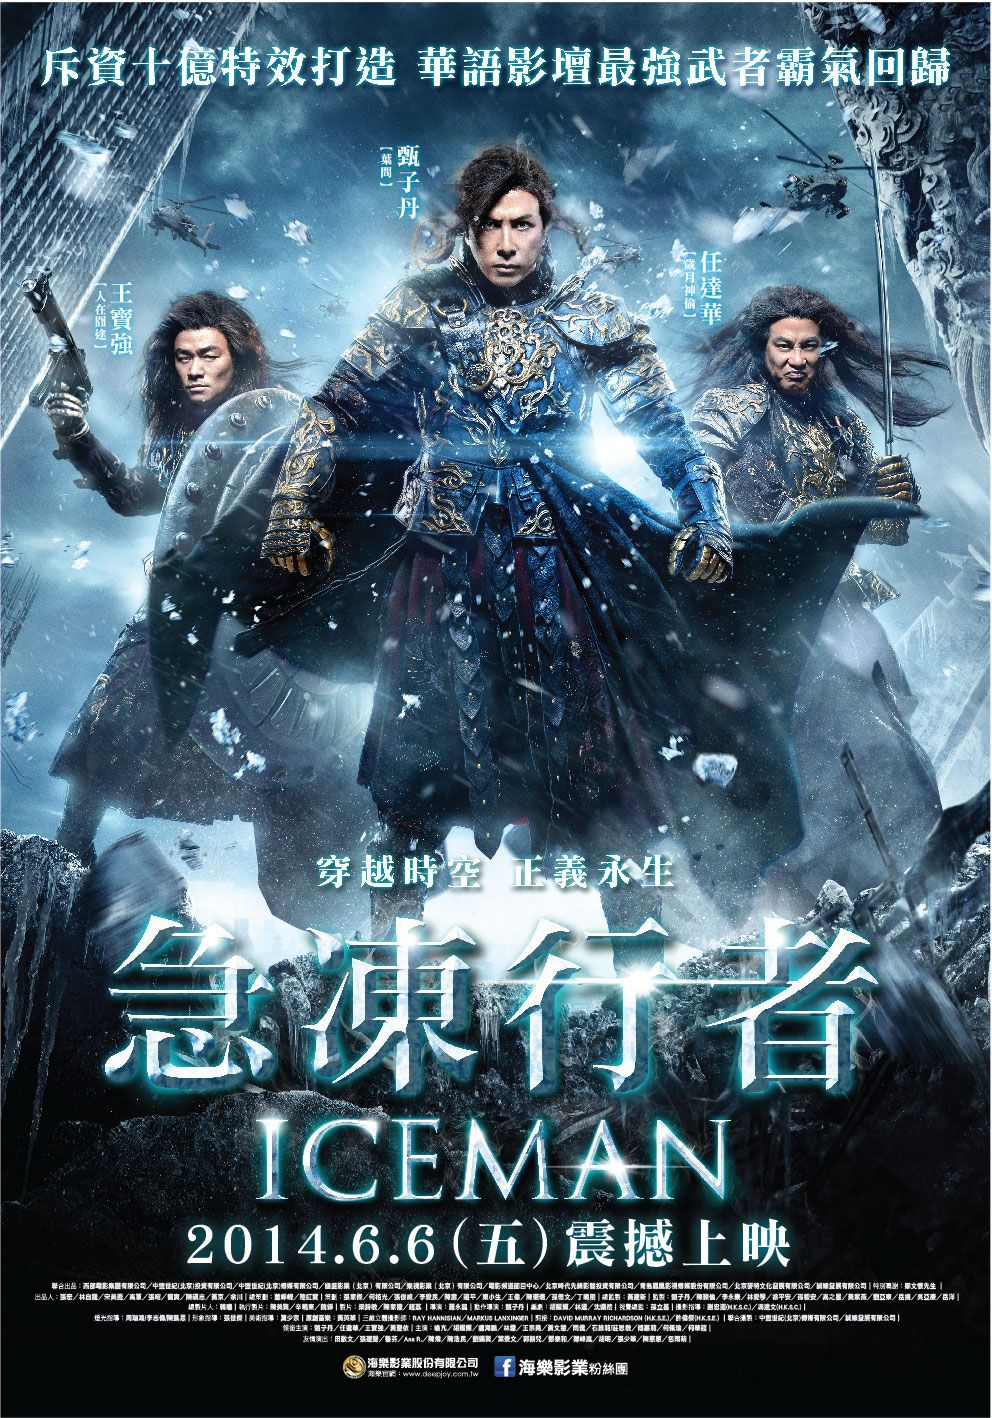 Iceman ( 2014 ) Iceman 2014, The Iceman, See Movie, C2c, Movies